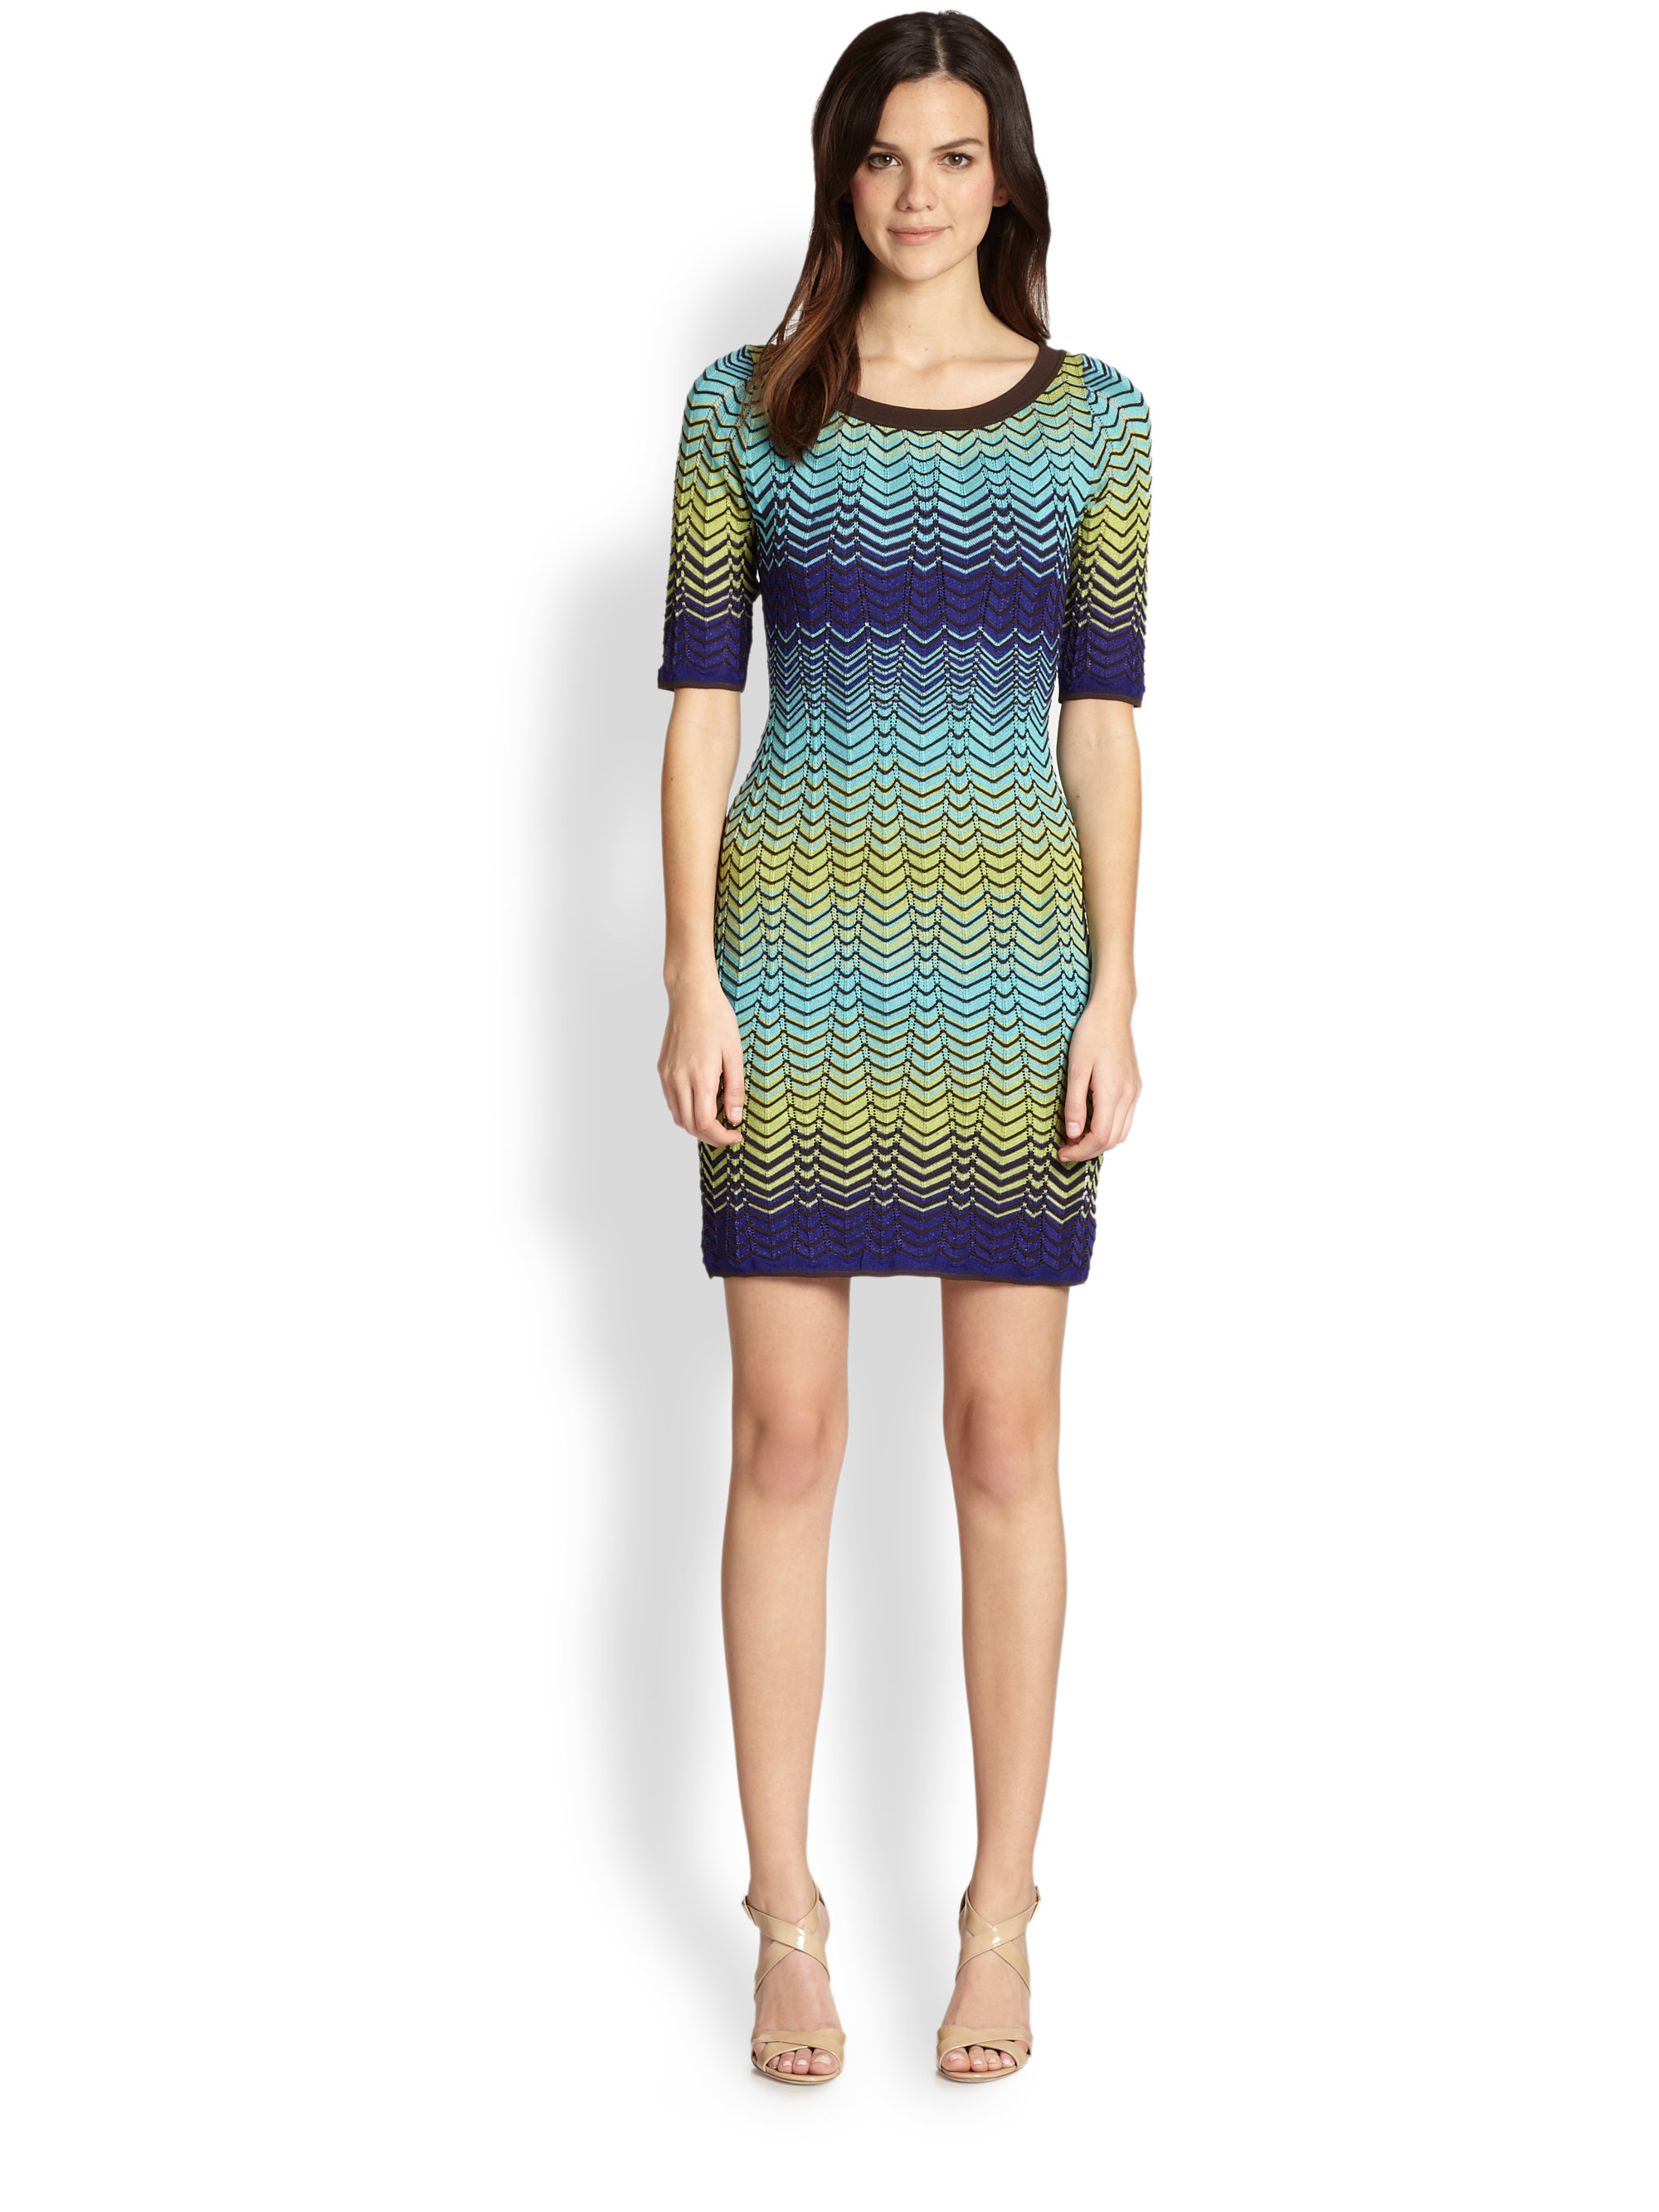 M Missoni Zigzag Knit Dress in Multicolor (TURQUOISE)